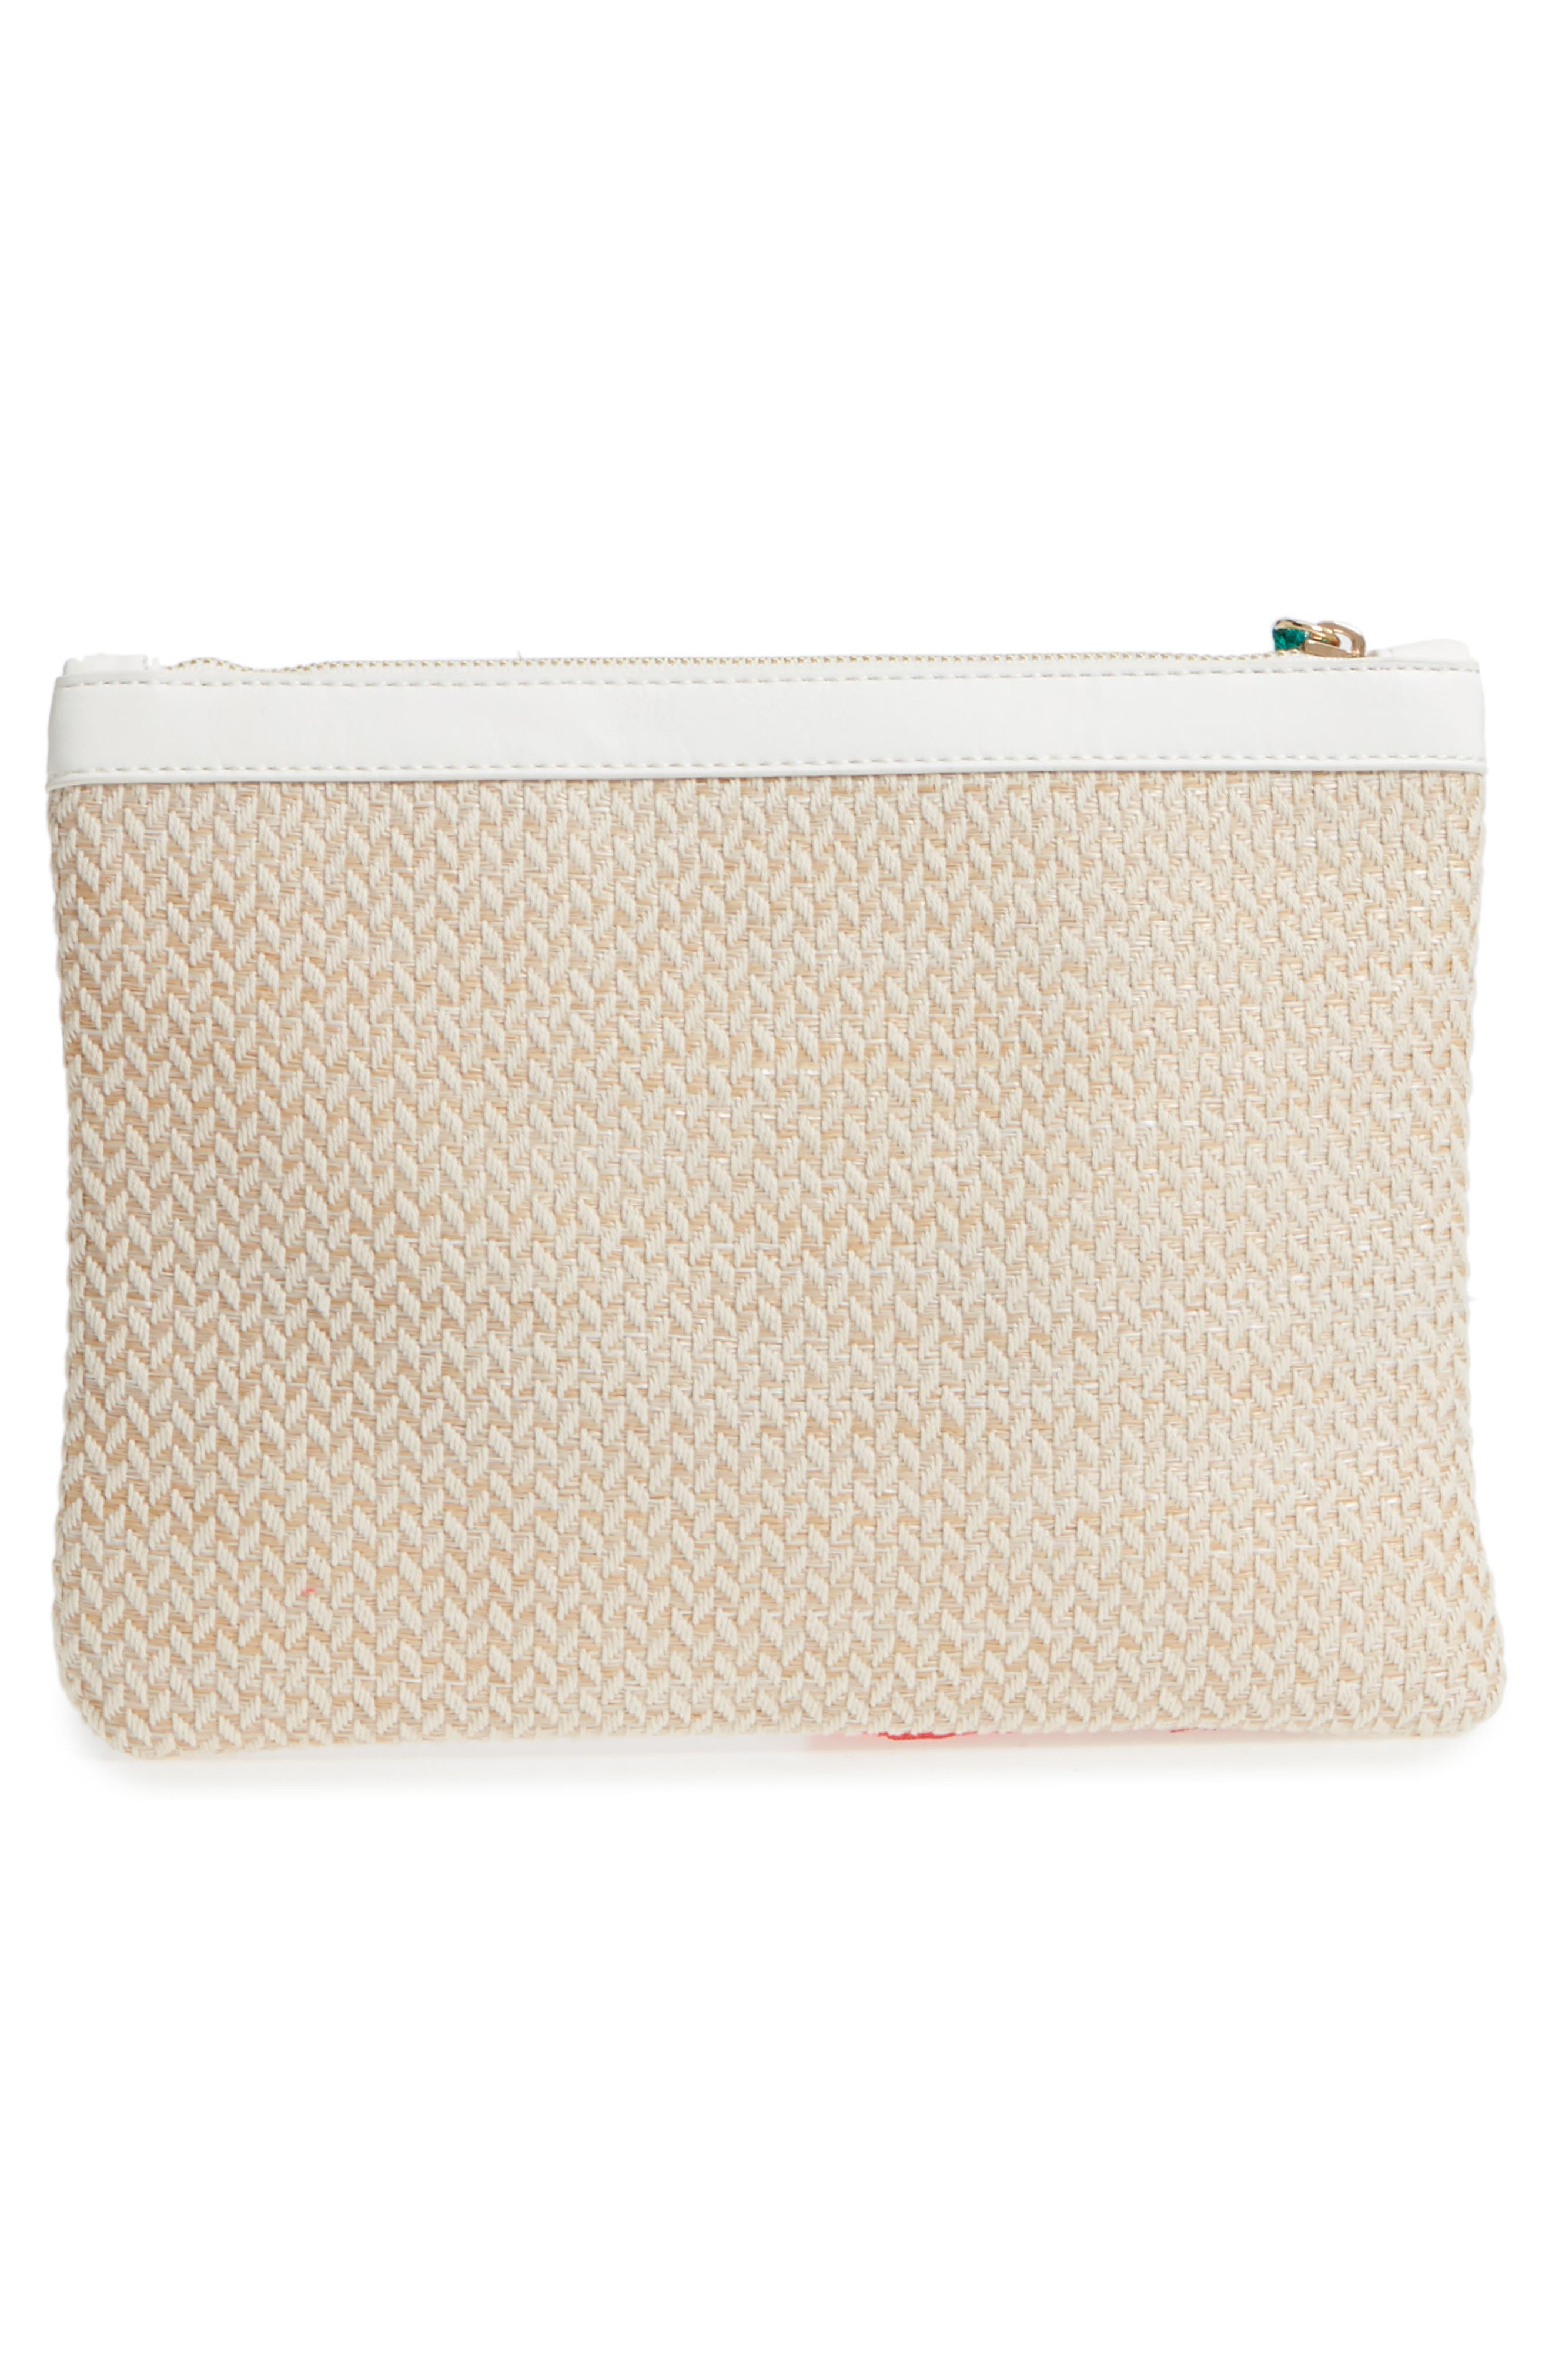 Tasseled Fabric Zip Pouch,                             Alternate thumbnail 3, color,                             White/ Natural